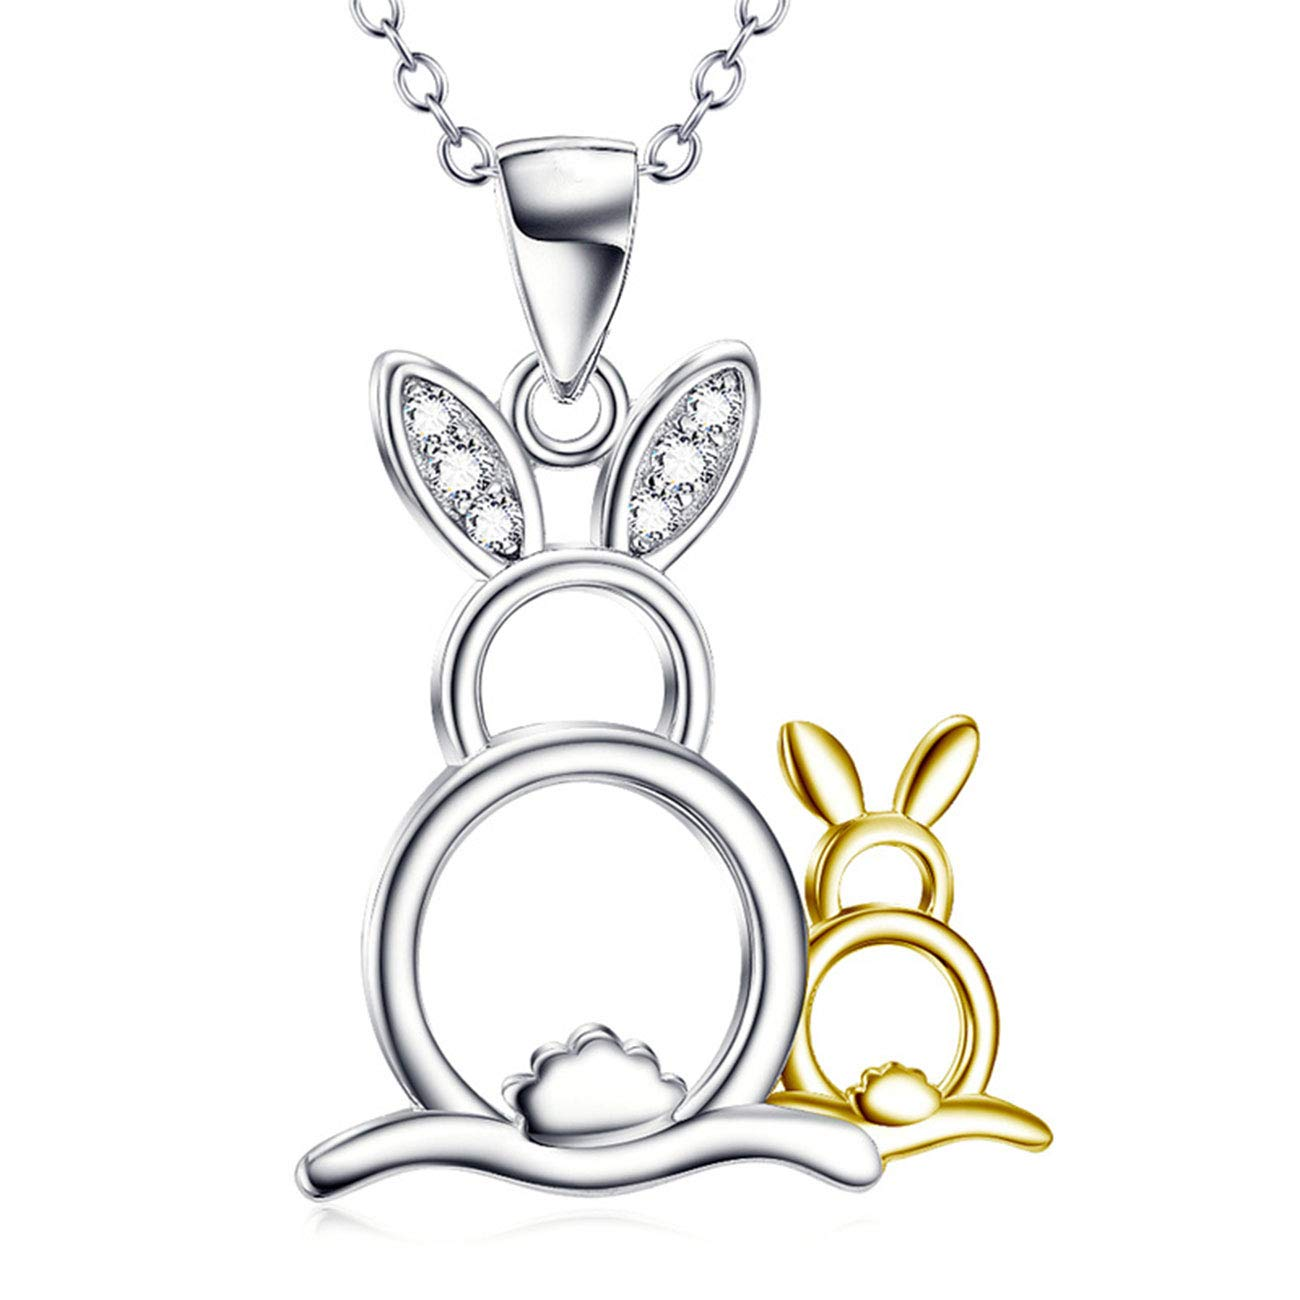 Aooaz Silver Plated Necklace Women Girl Link Pendant Necklace White Wedding for Valentines